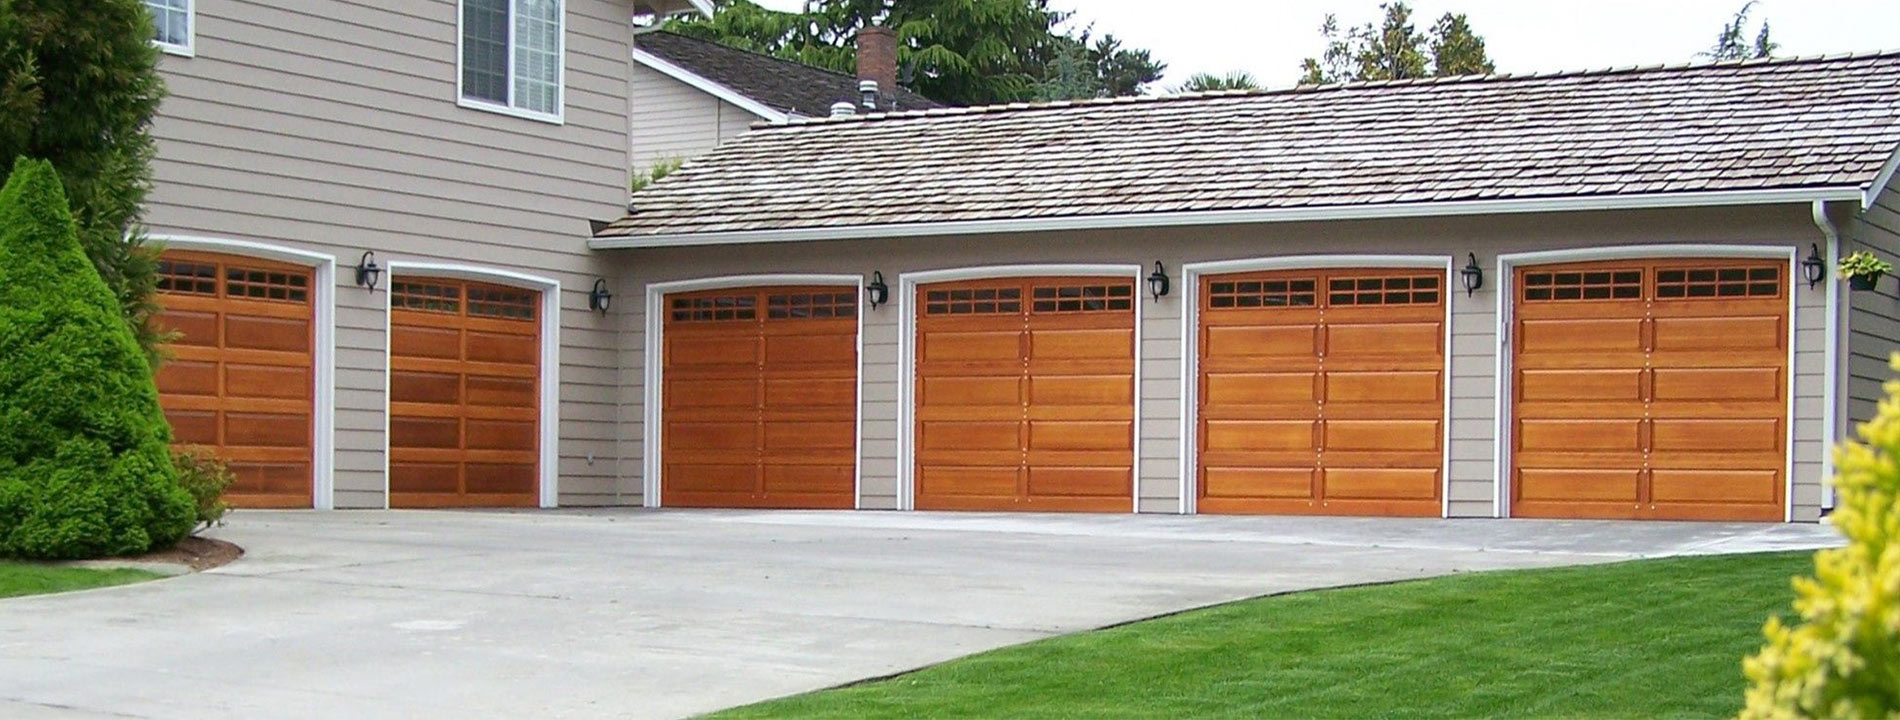 Garage Door Repair Nampa Id Garage Door Repair Company